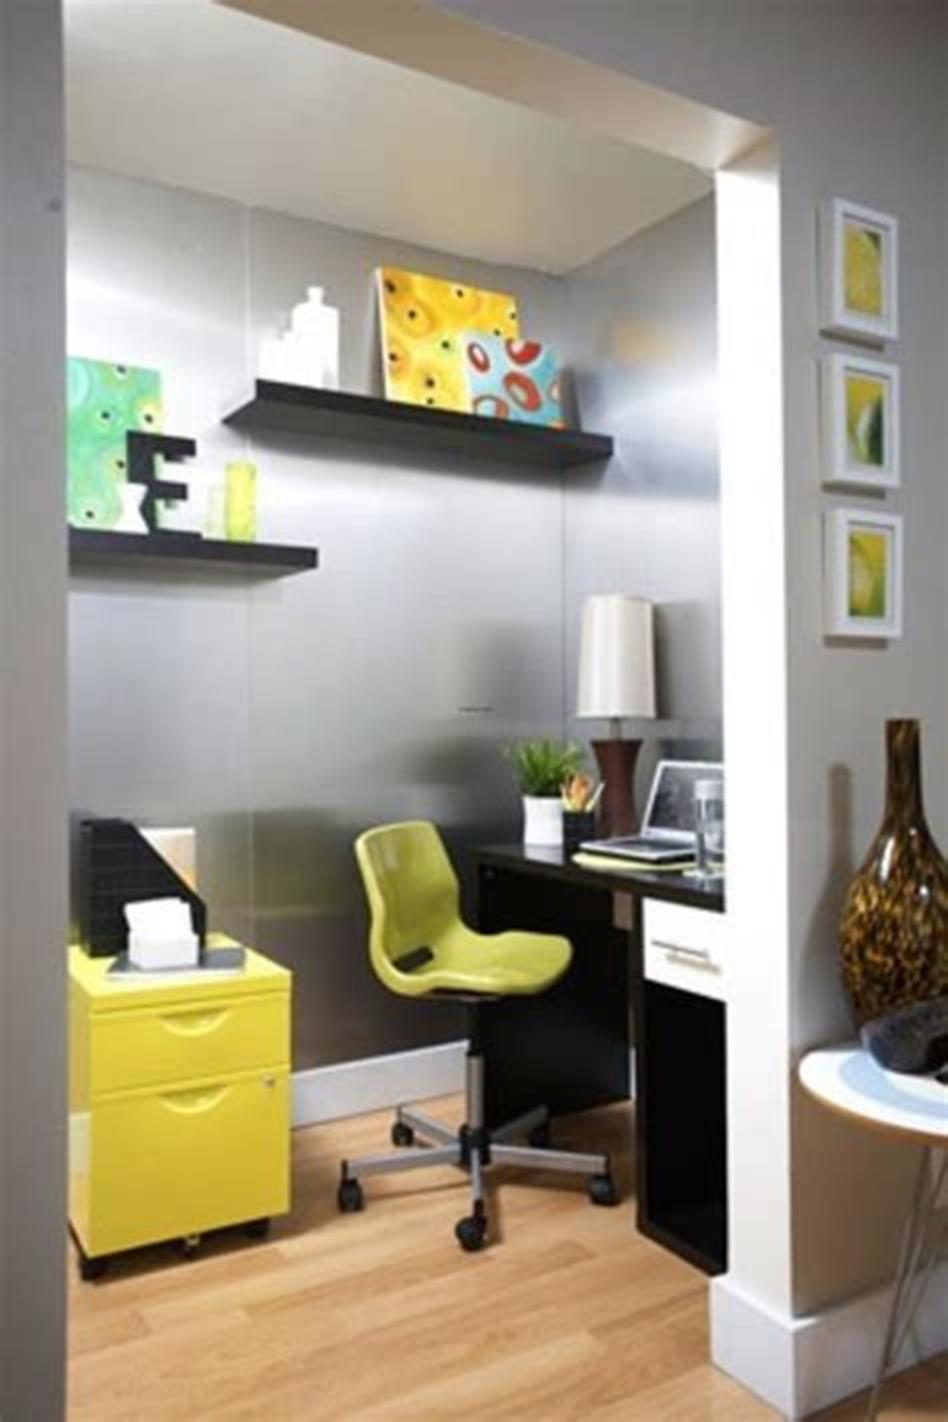 50 Best Small Space Office Decorating Ideas On a Budget 2019 23